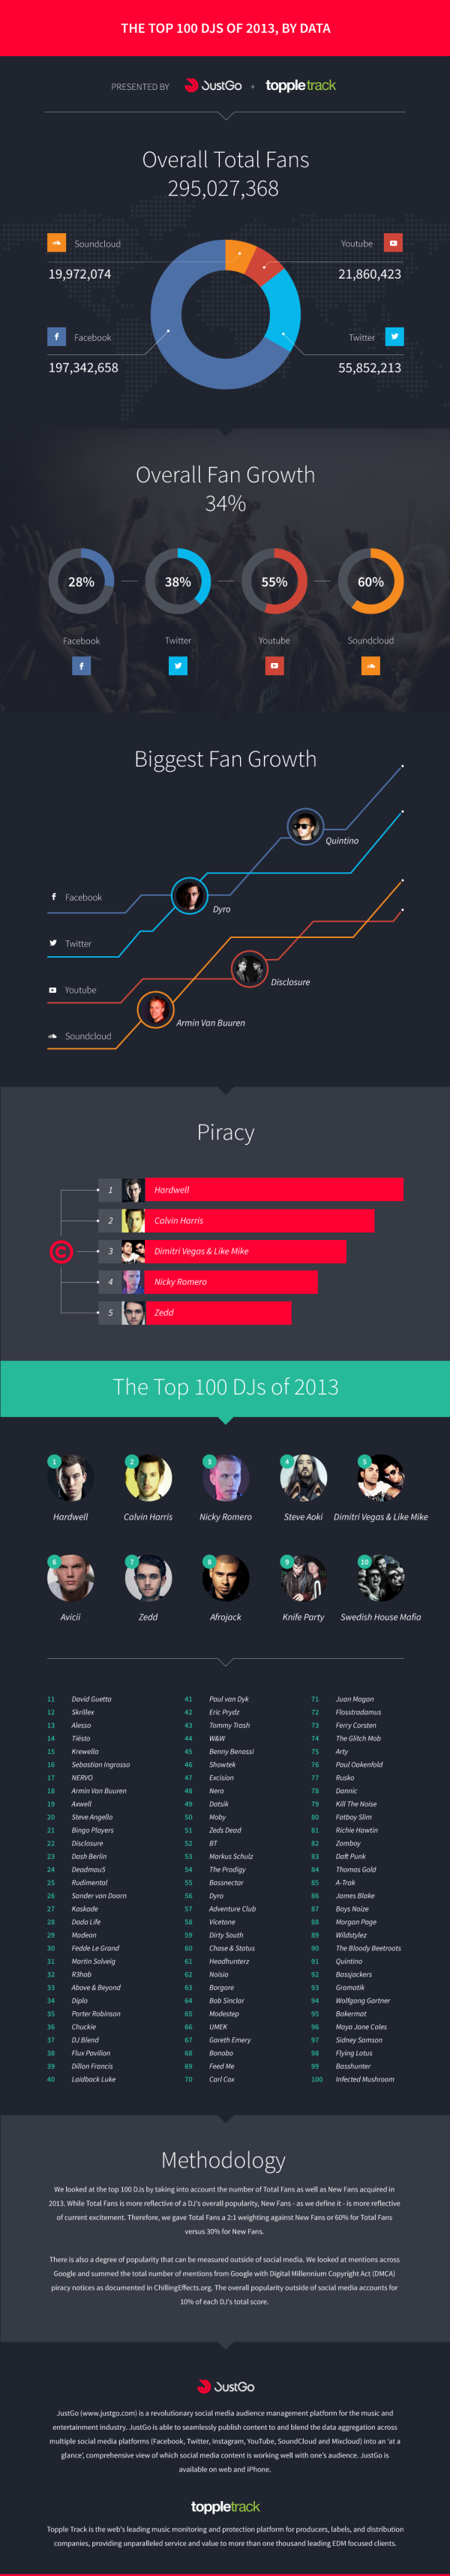 Top 100 DJS of 2013, by Data infographic